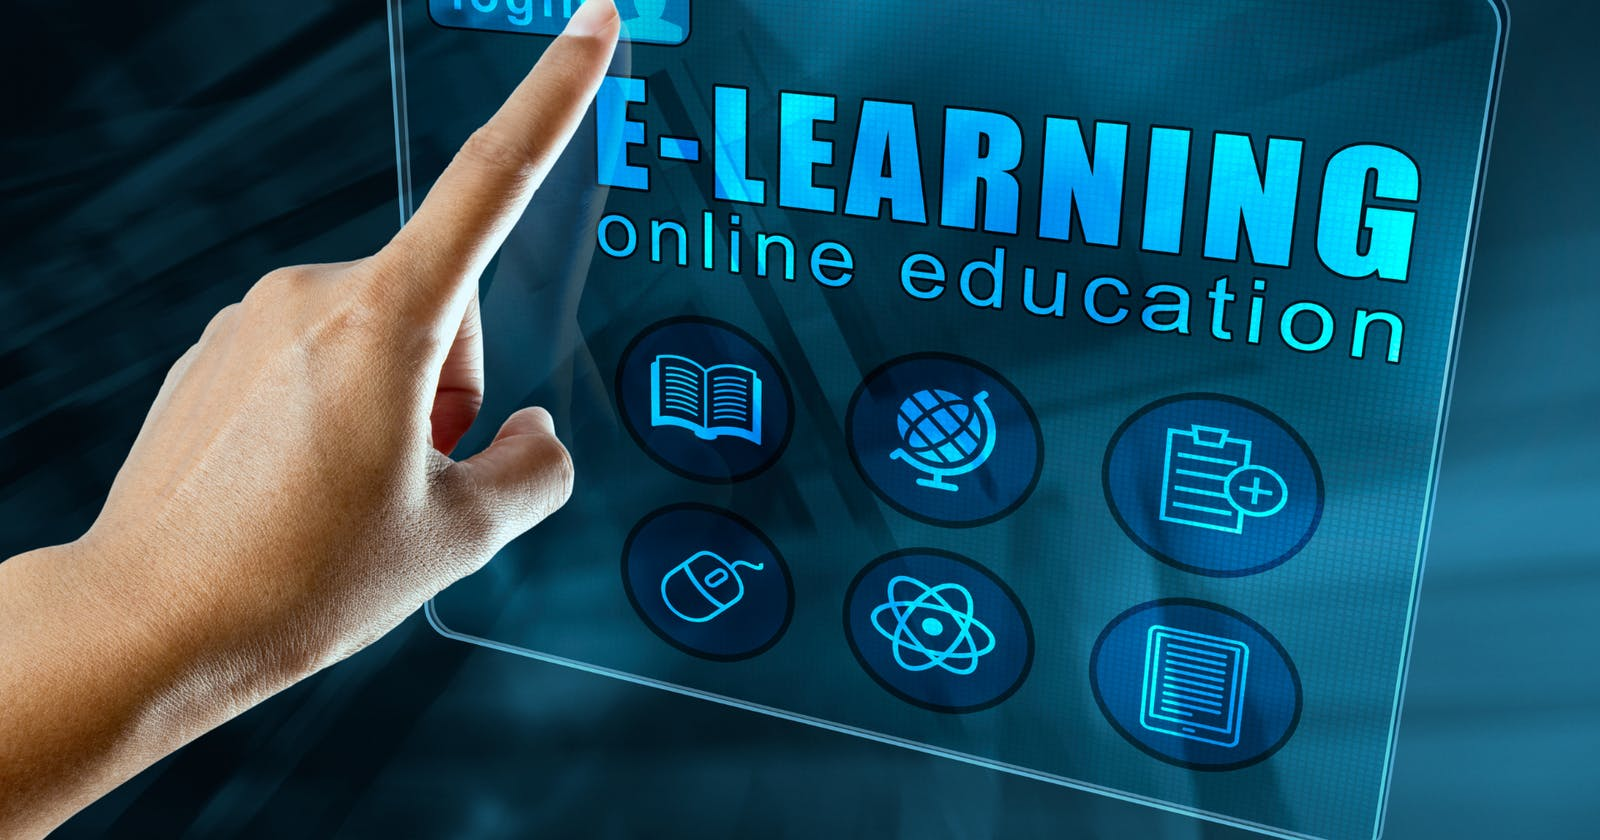 Things to consider before choosing an e-learning platform